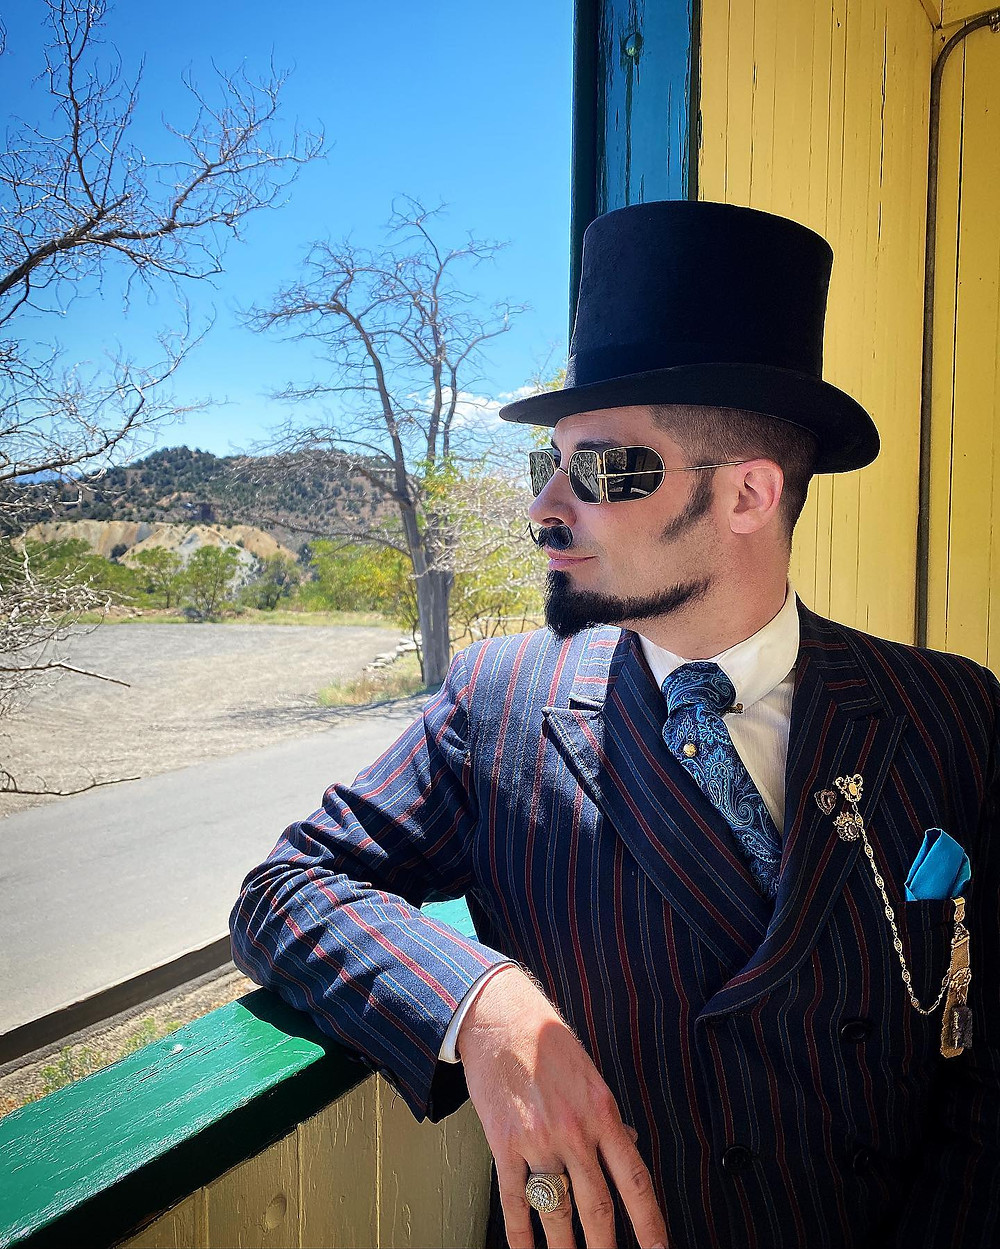 Special Guest interview with Richard-Lael Lillard- AKA The Gentleman Psychic